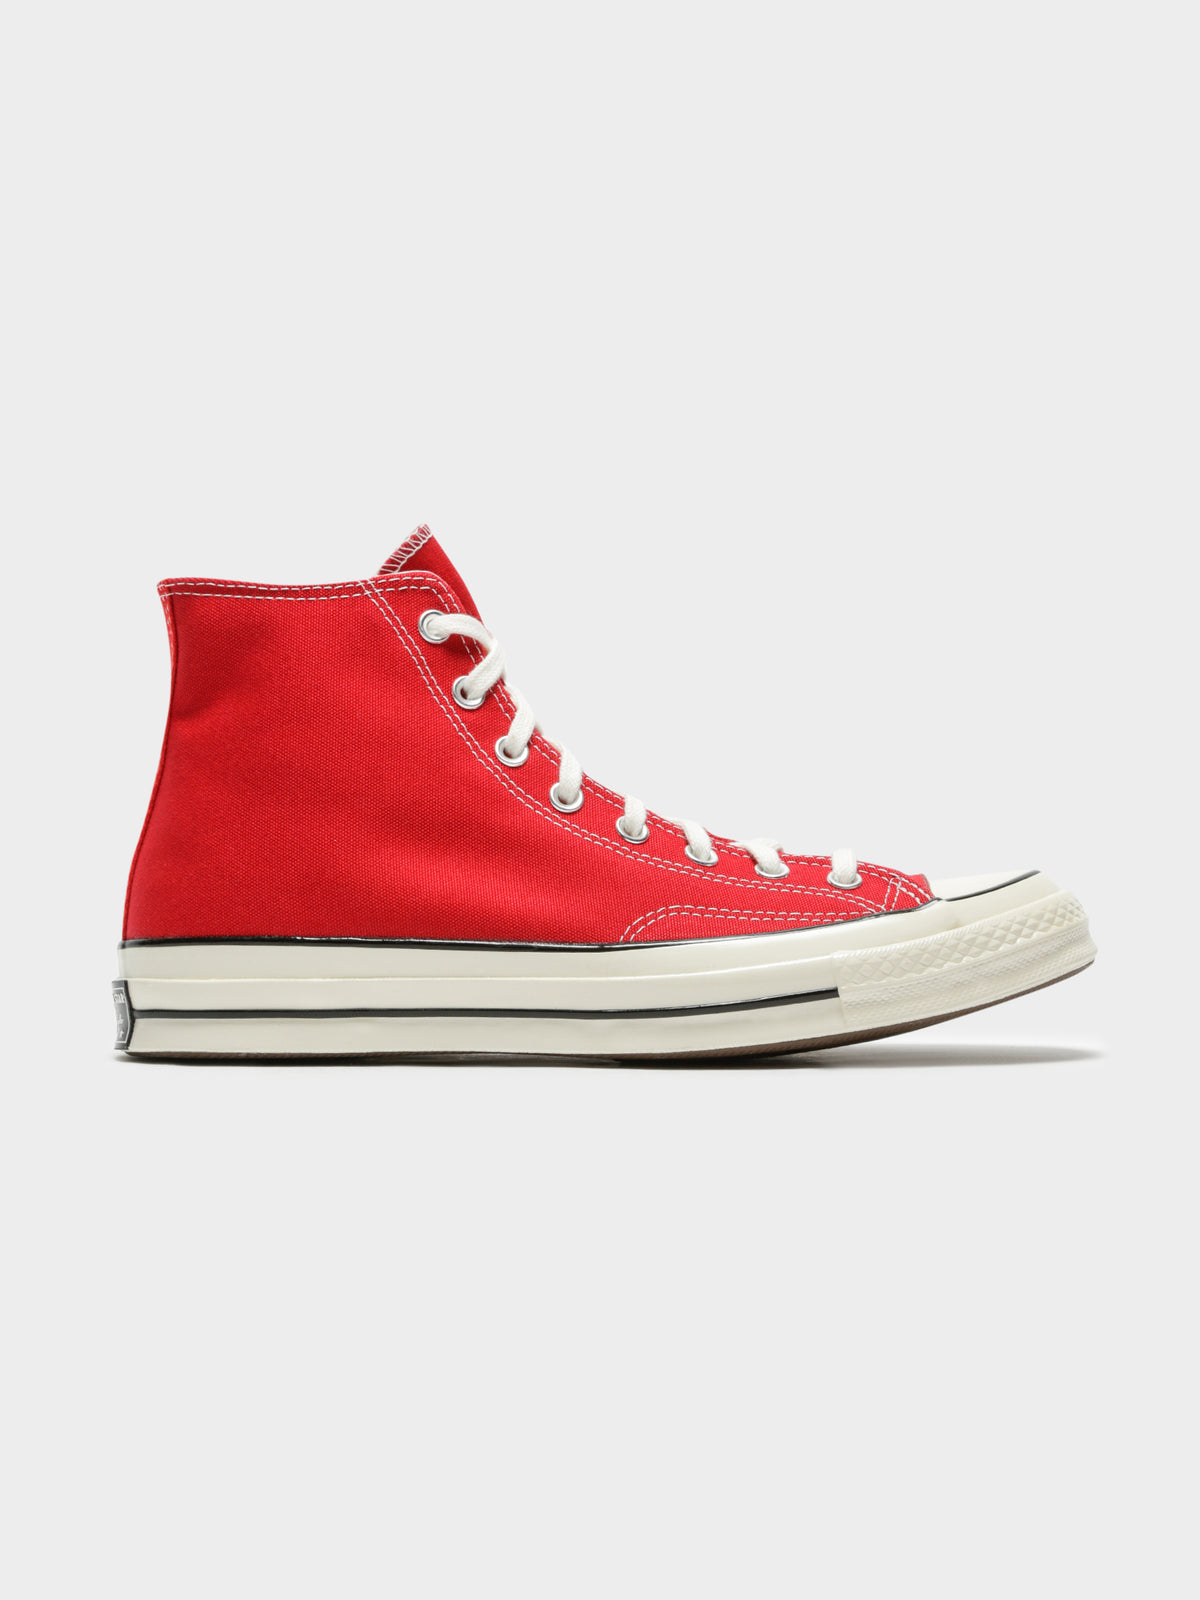 Mens All Star 70 Always On High Top Sneakers in Red & White